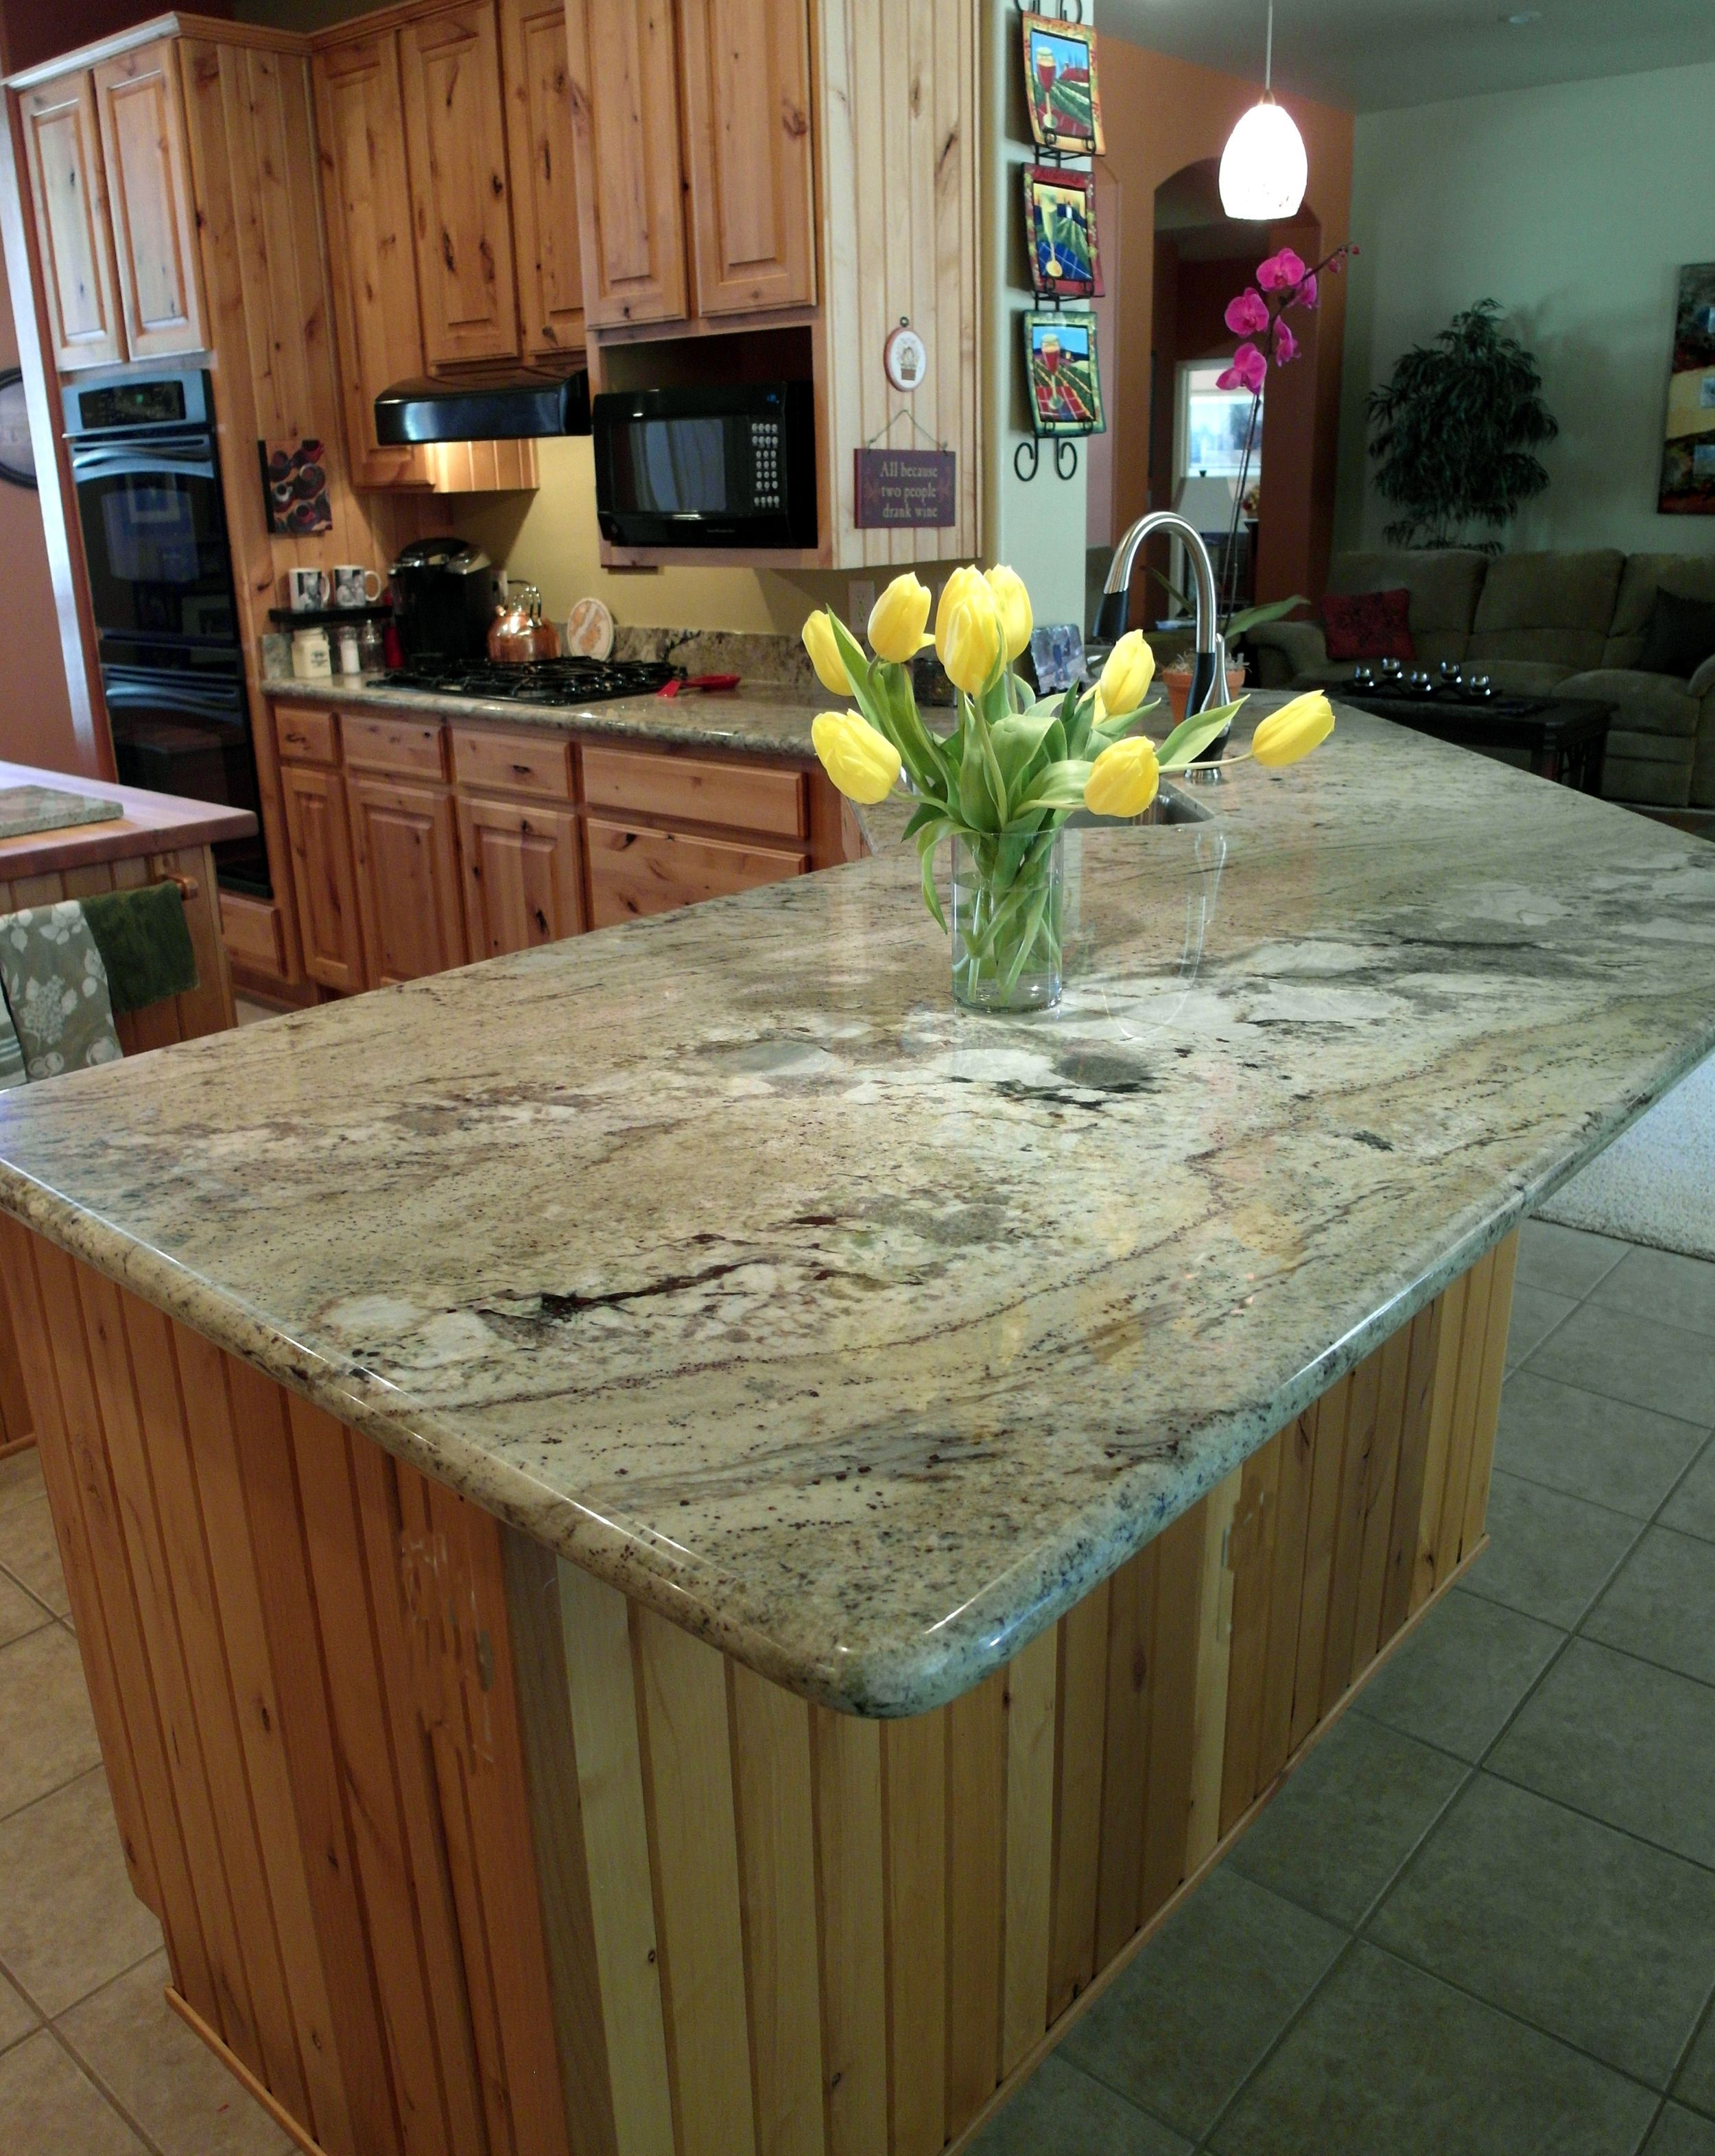 Mesquite Granite In Stock Slabs Metalcountertops Kitchen Cabinets And Countertops Tuscan Kitchen Kitchen Countertops